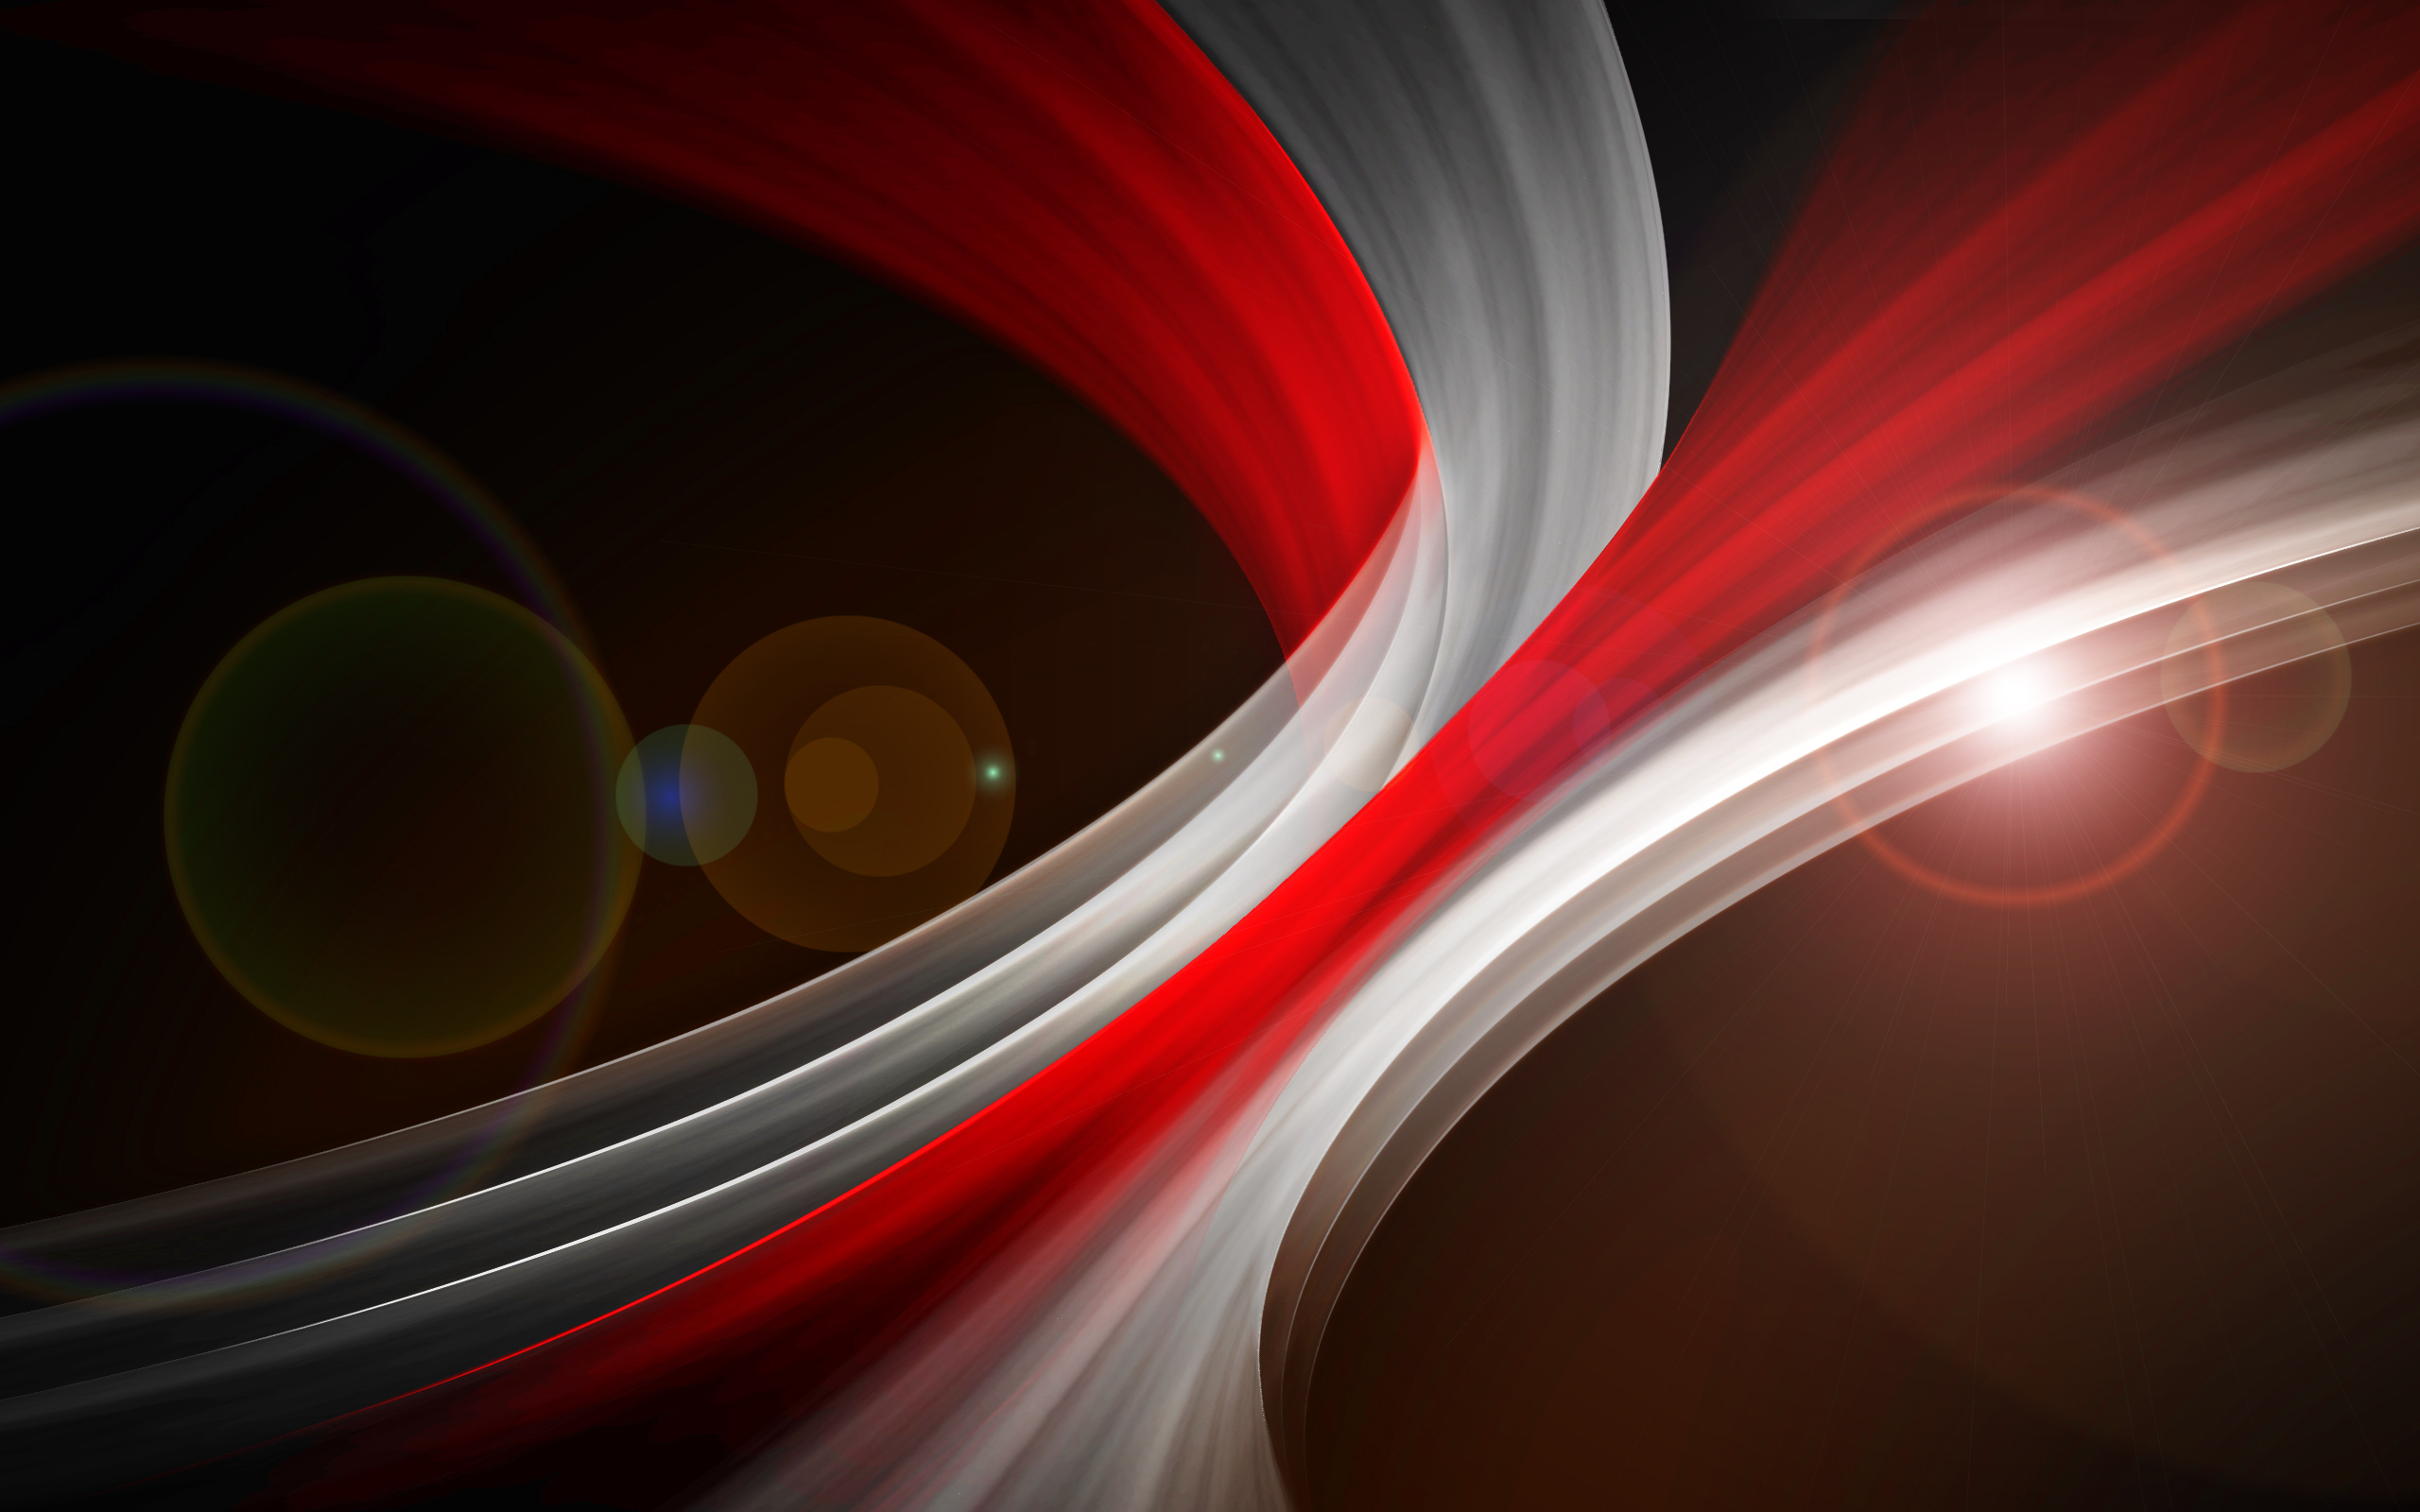 Red White Abstract Swirl Hd Abstract 4k Wallpapers Images